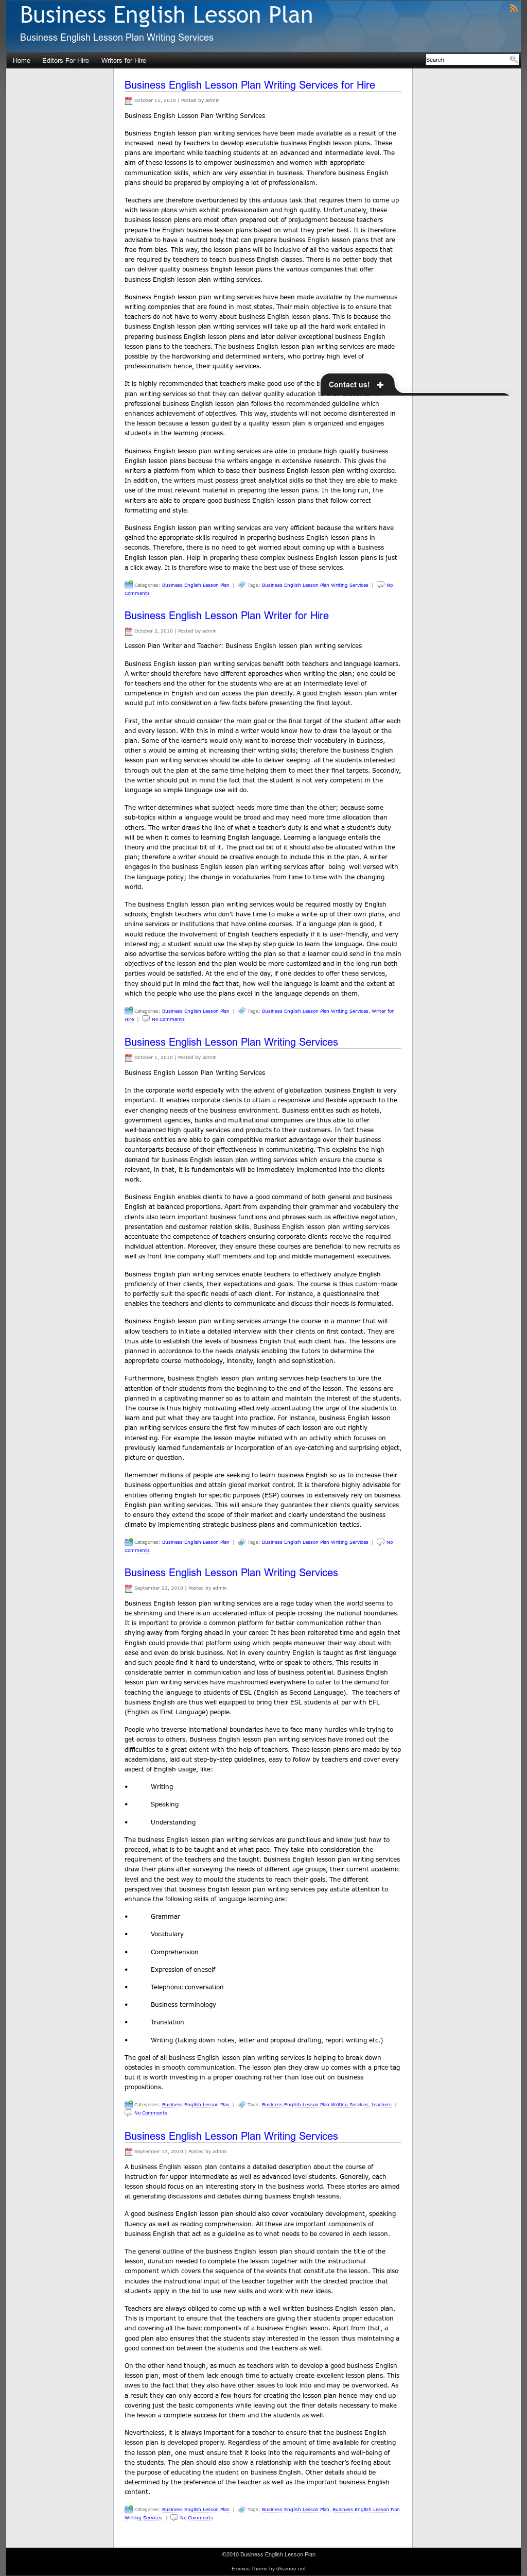 Business English Lesson Plan Competitors, Revenue and Employees